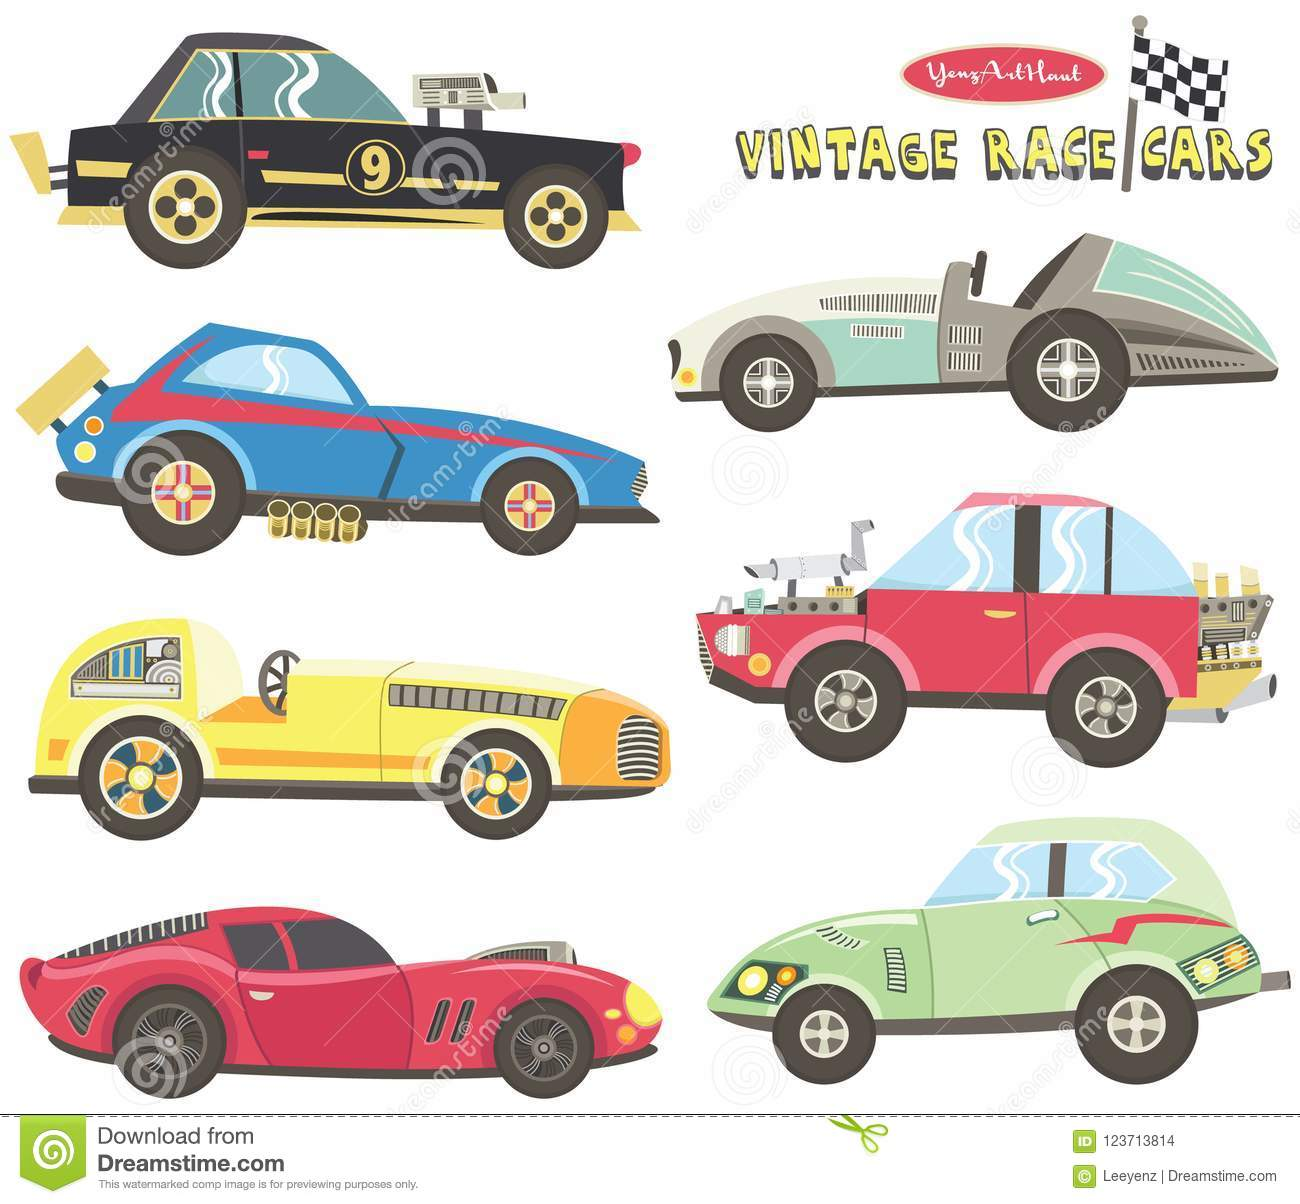 Vintage Race Car Collections Stock Vector Illustration Of Frames Fabric 123713814